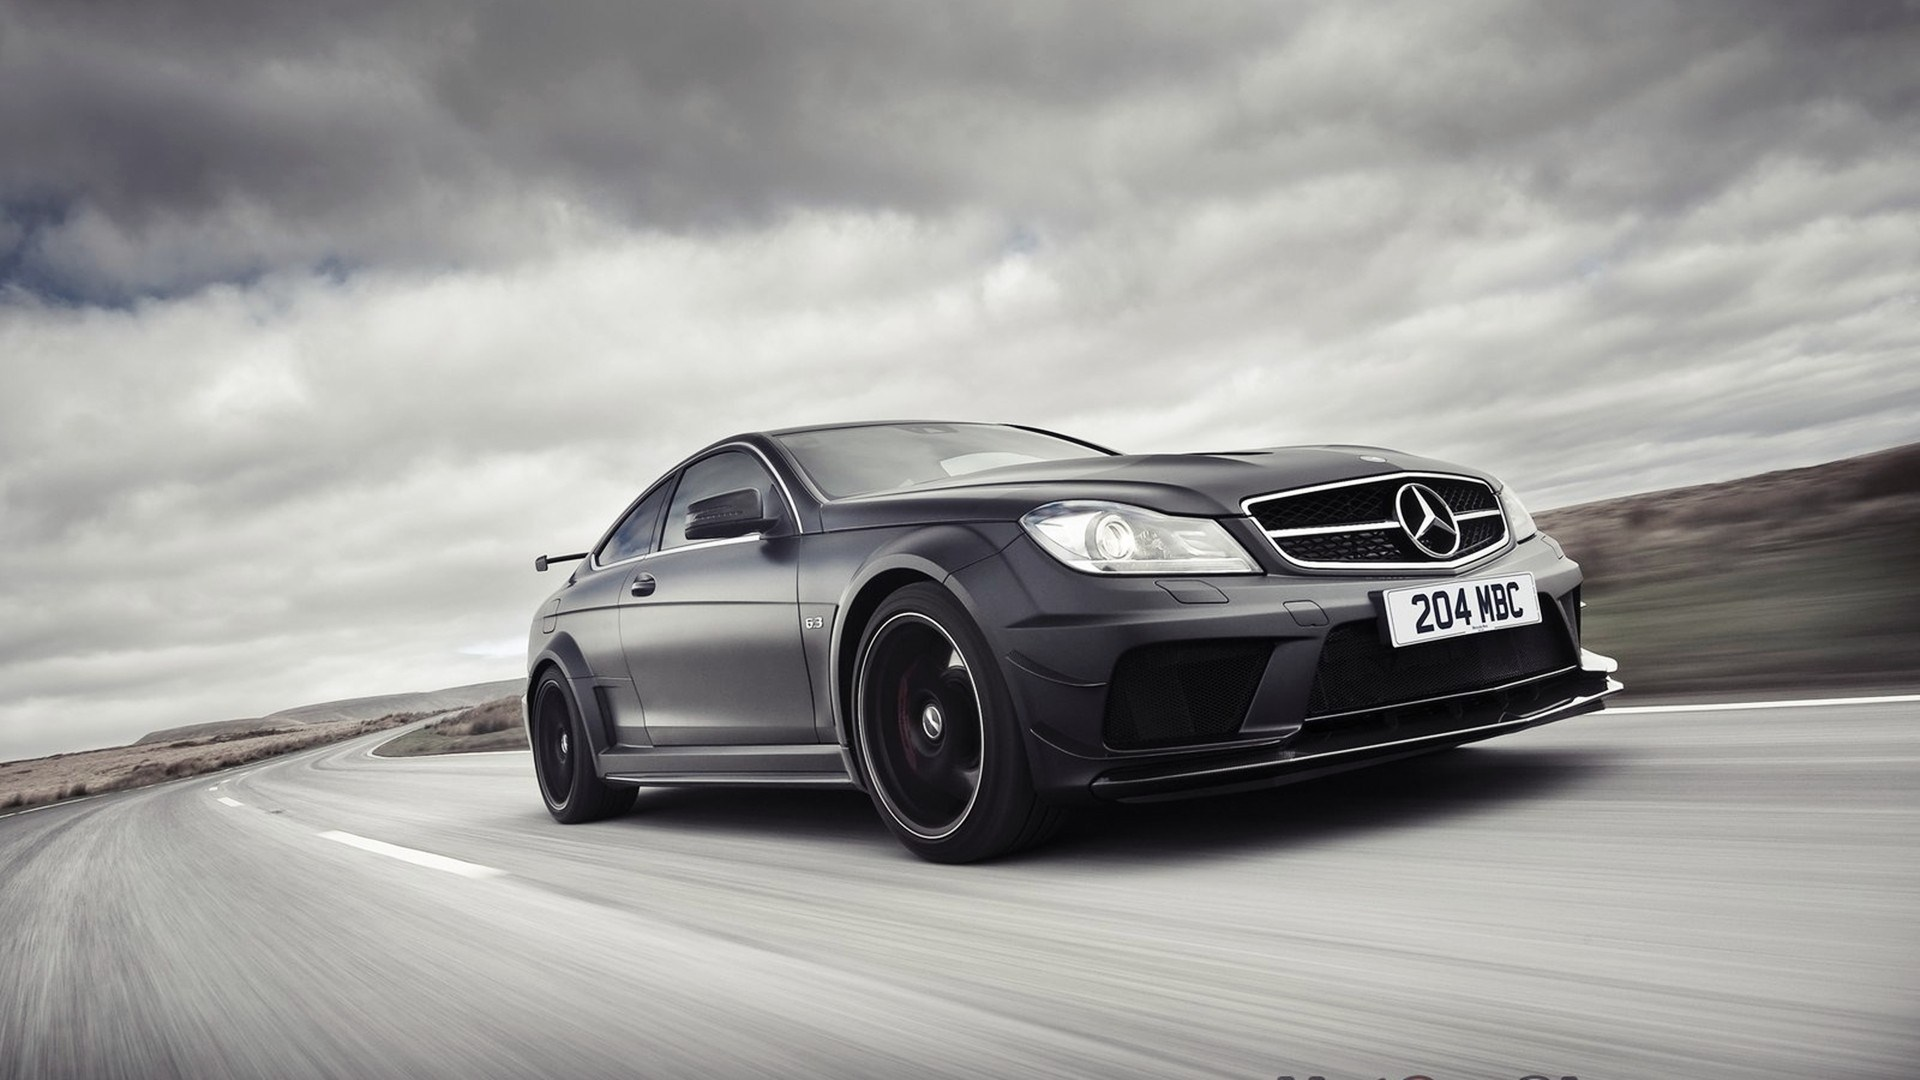 C63 Amg Black Series Wallpaper